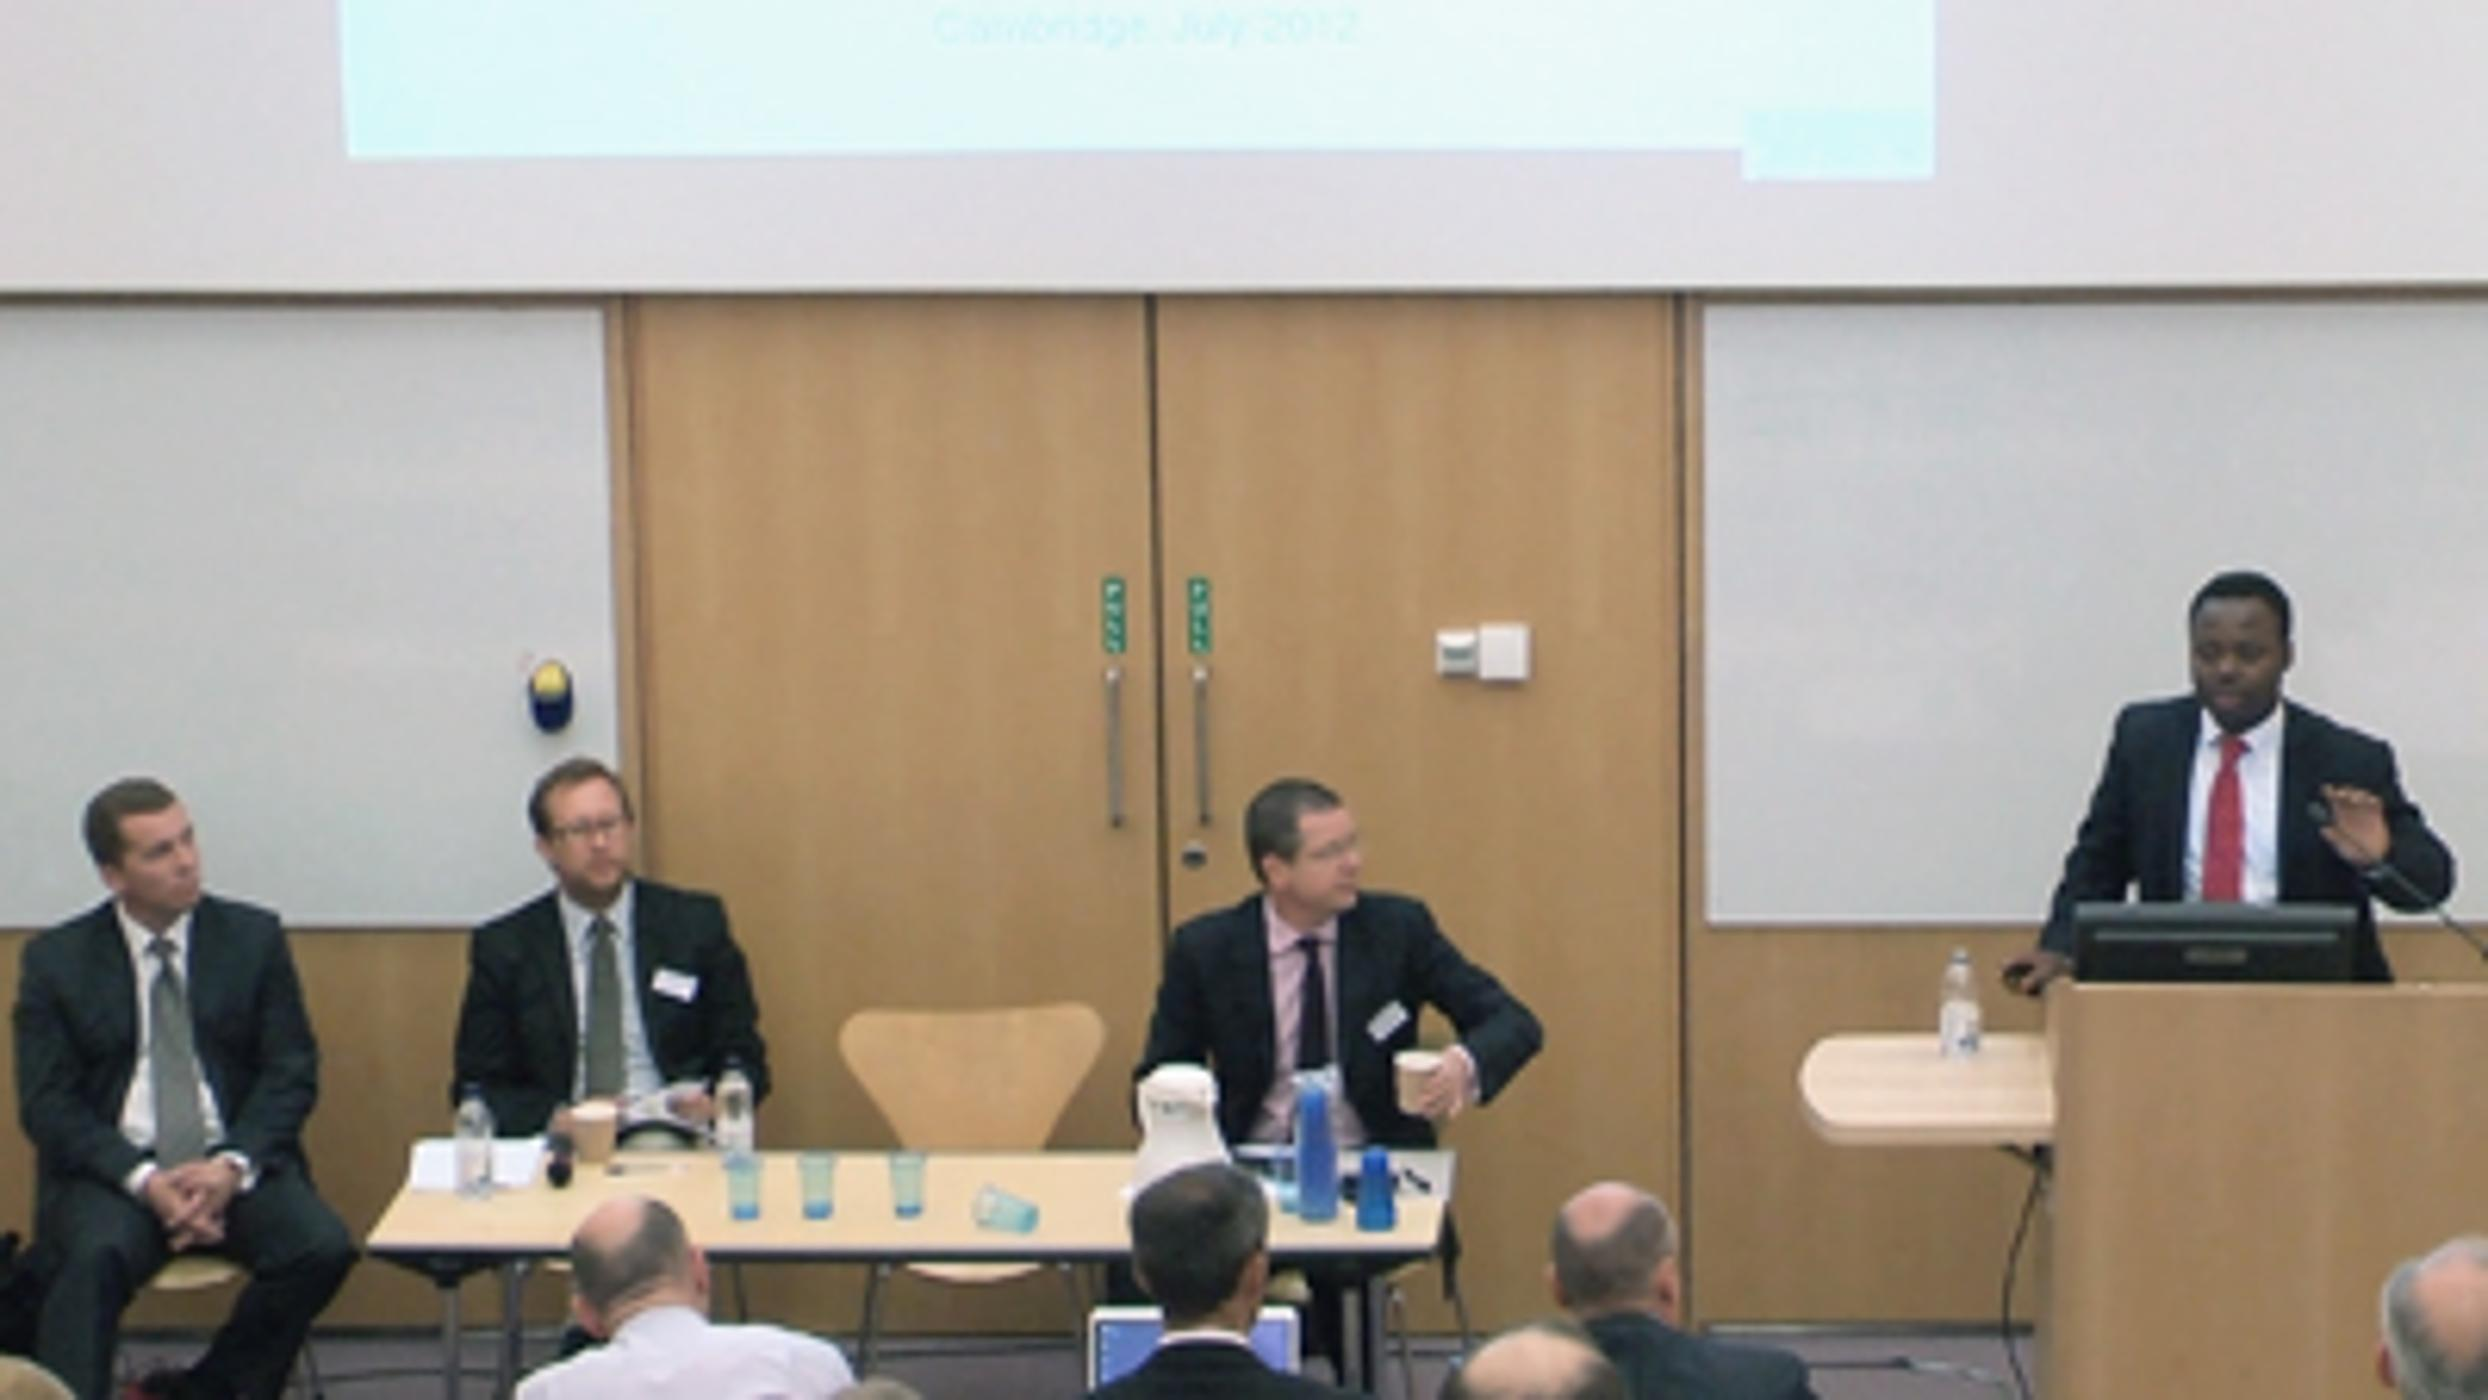 Day 3: 'Diagnostics in Evidence-Based Policing': Justice Tankebe, Paul Quinton, William McWilliam & Robert Carden